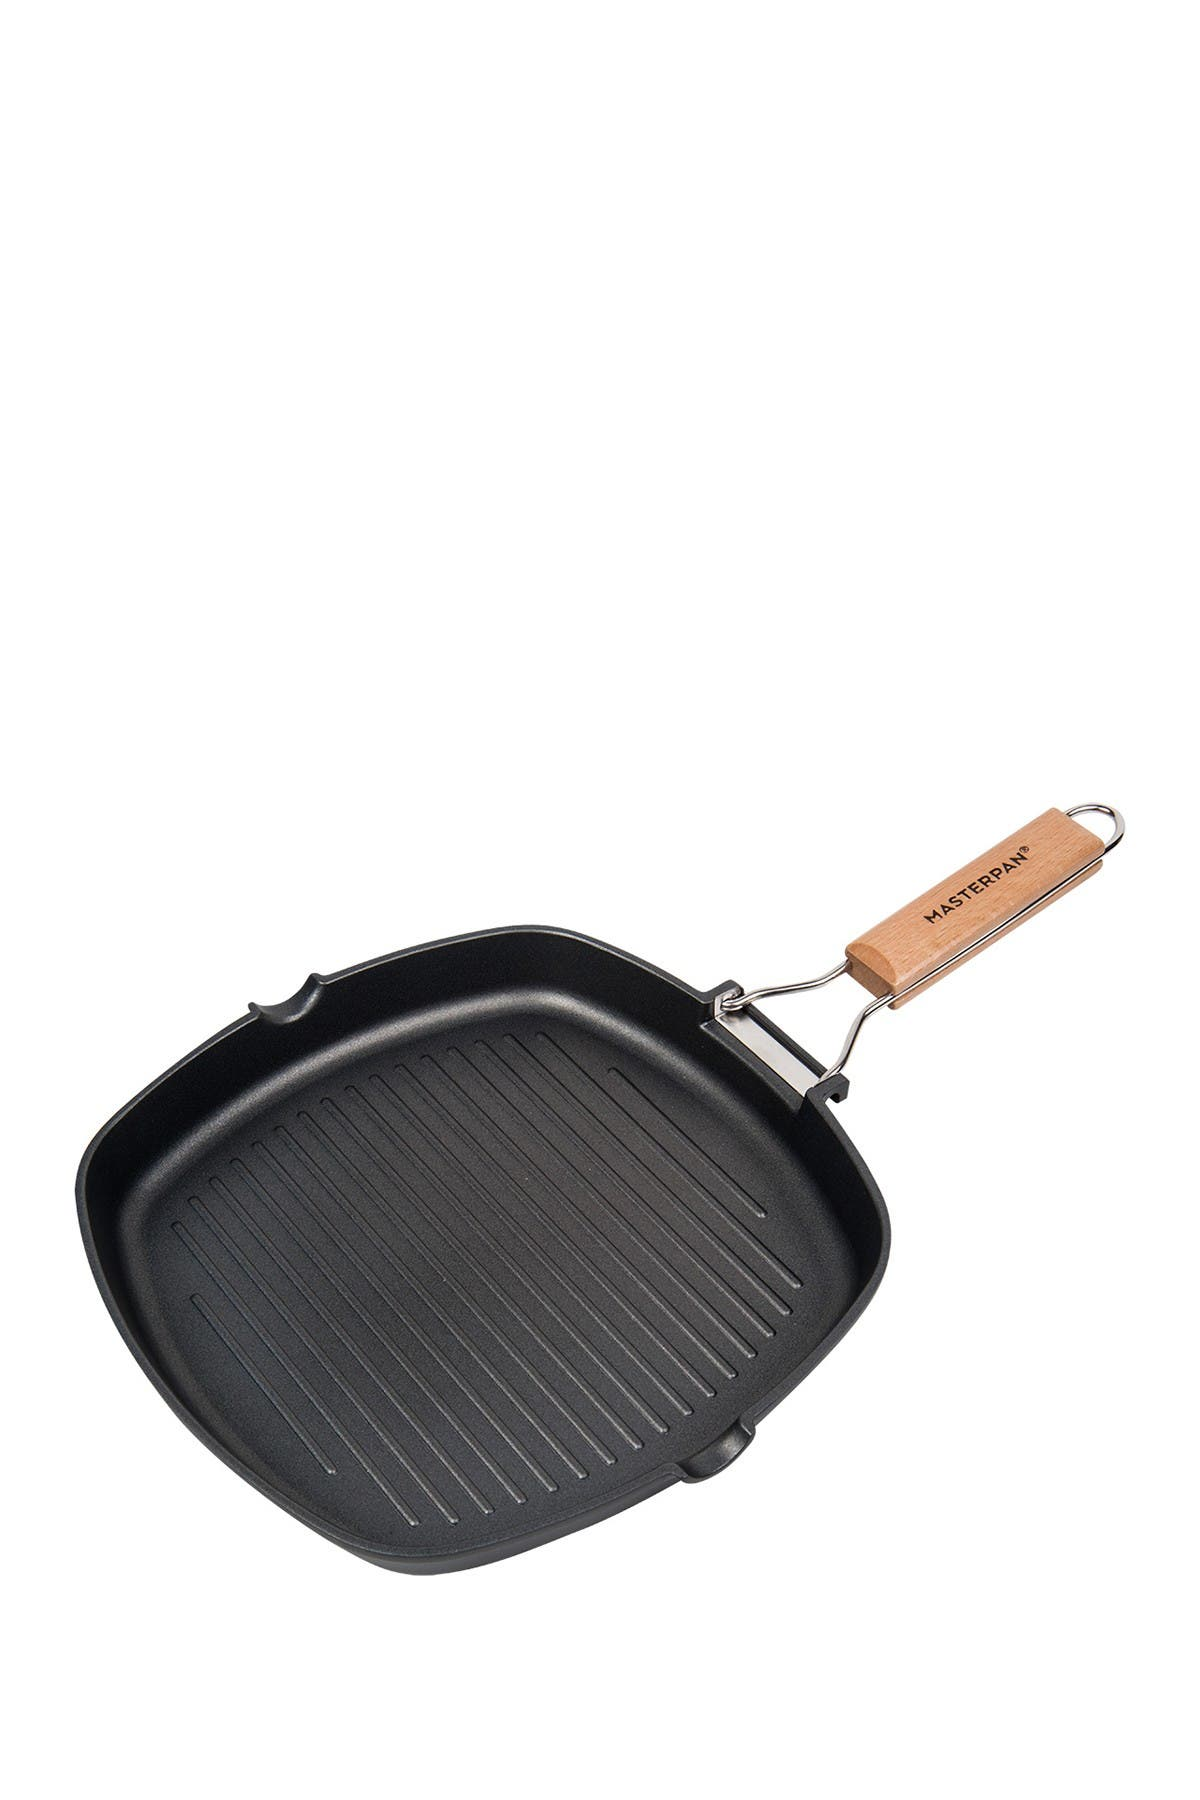 "Image of MASTERPAN Black Non-Stick 8"" Grill Pan with Folding Wooden Handle"